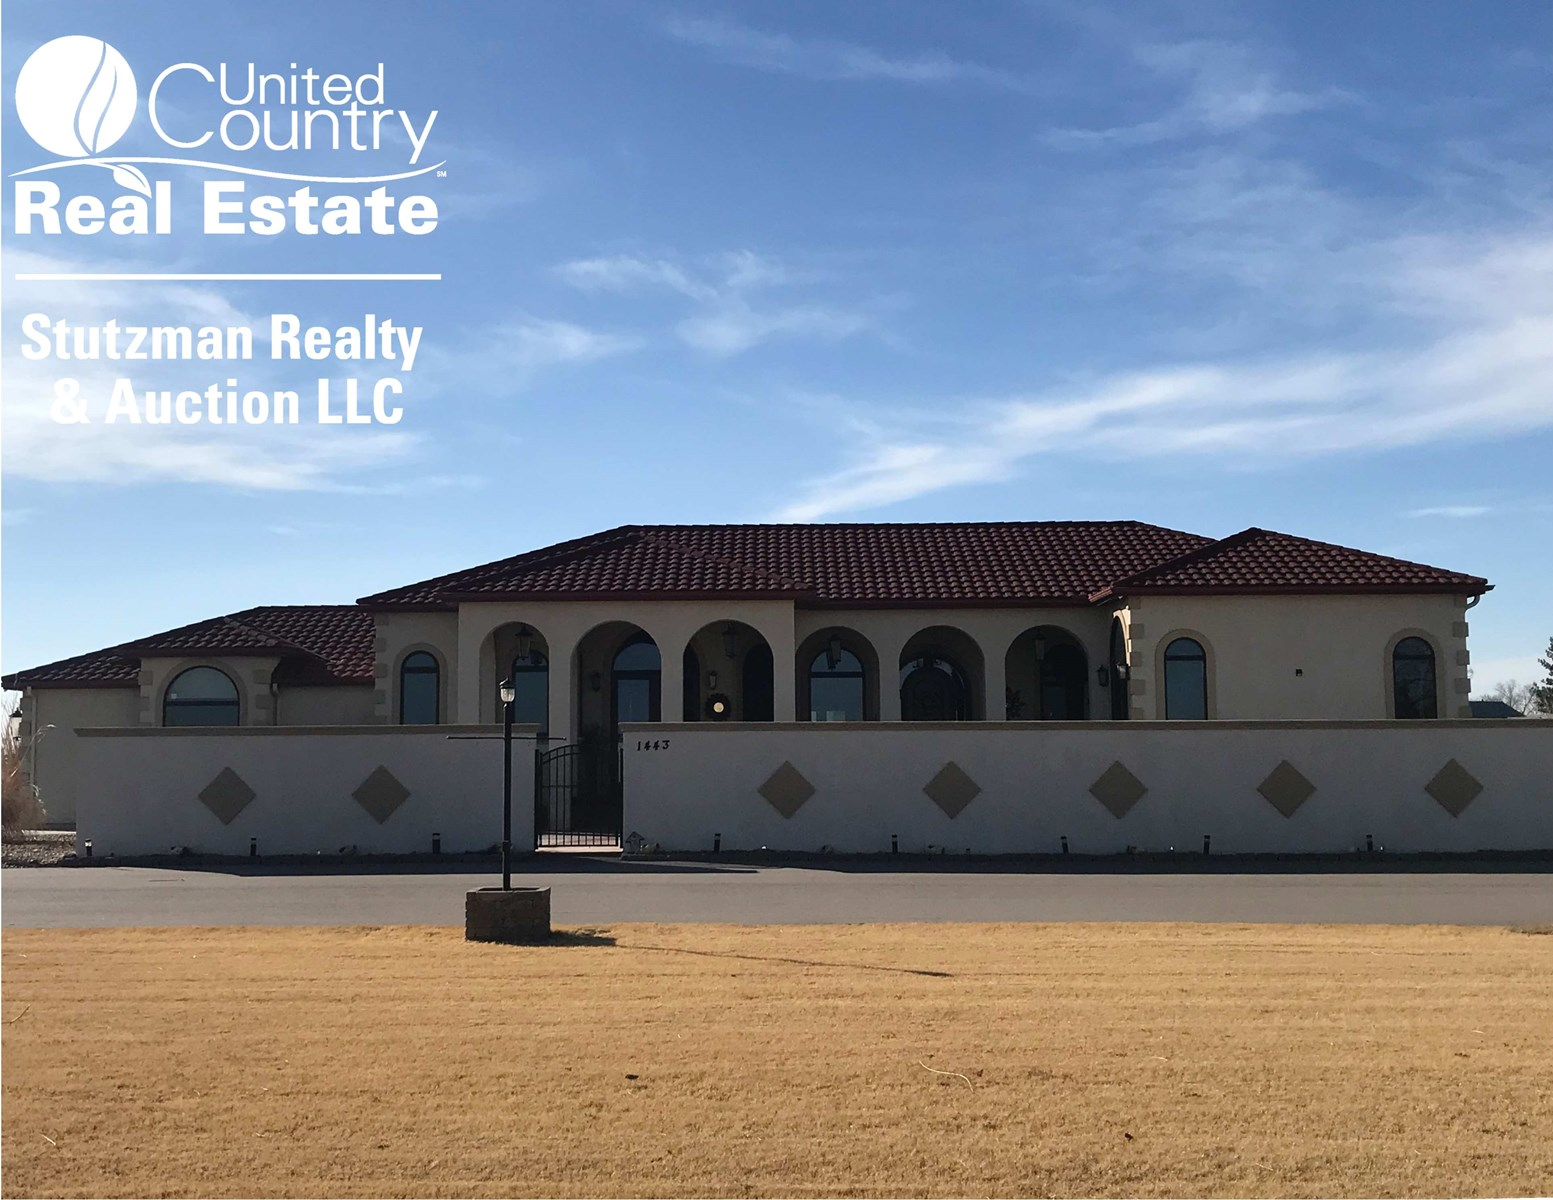 LUXURY EQUESTRIAN PROPERTY FOR SALE ~ WESTERN KANSAS